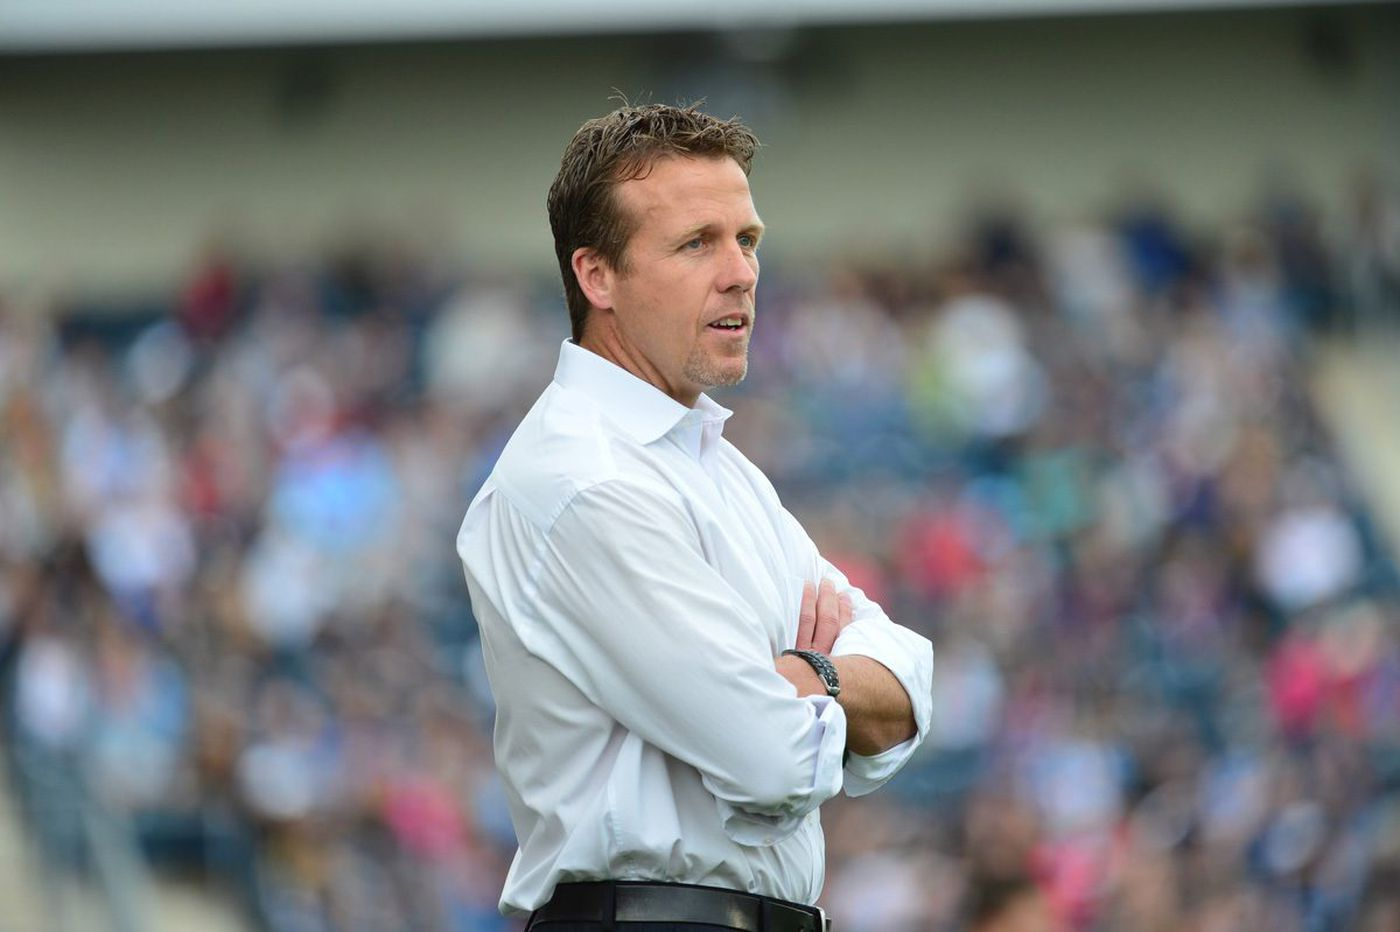 Former Union coach John Hackworth wants another shot at working in MLS